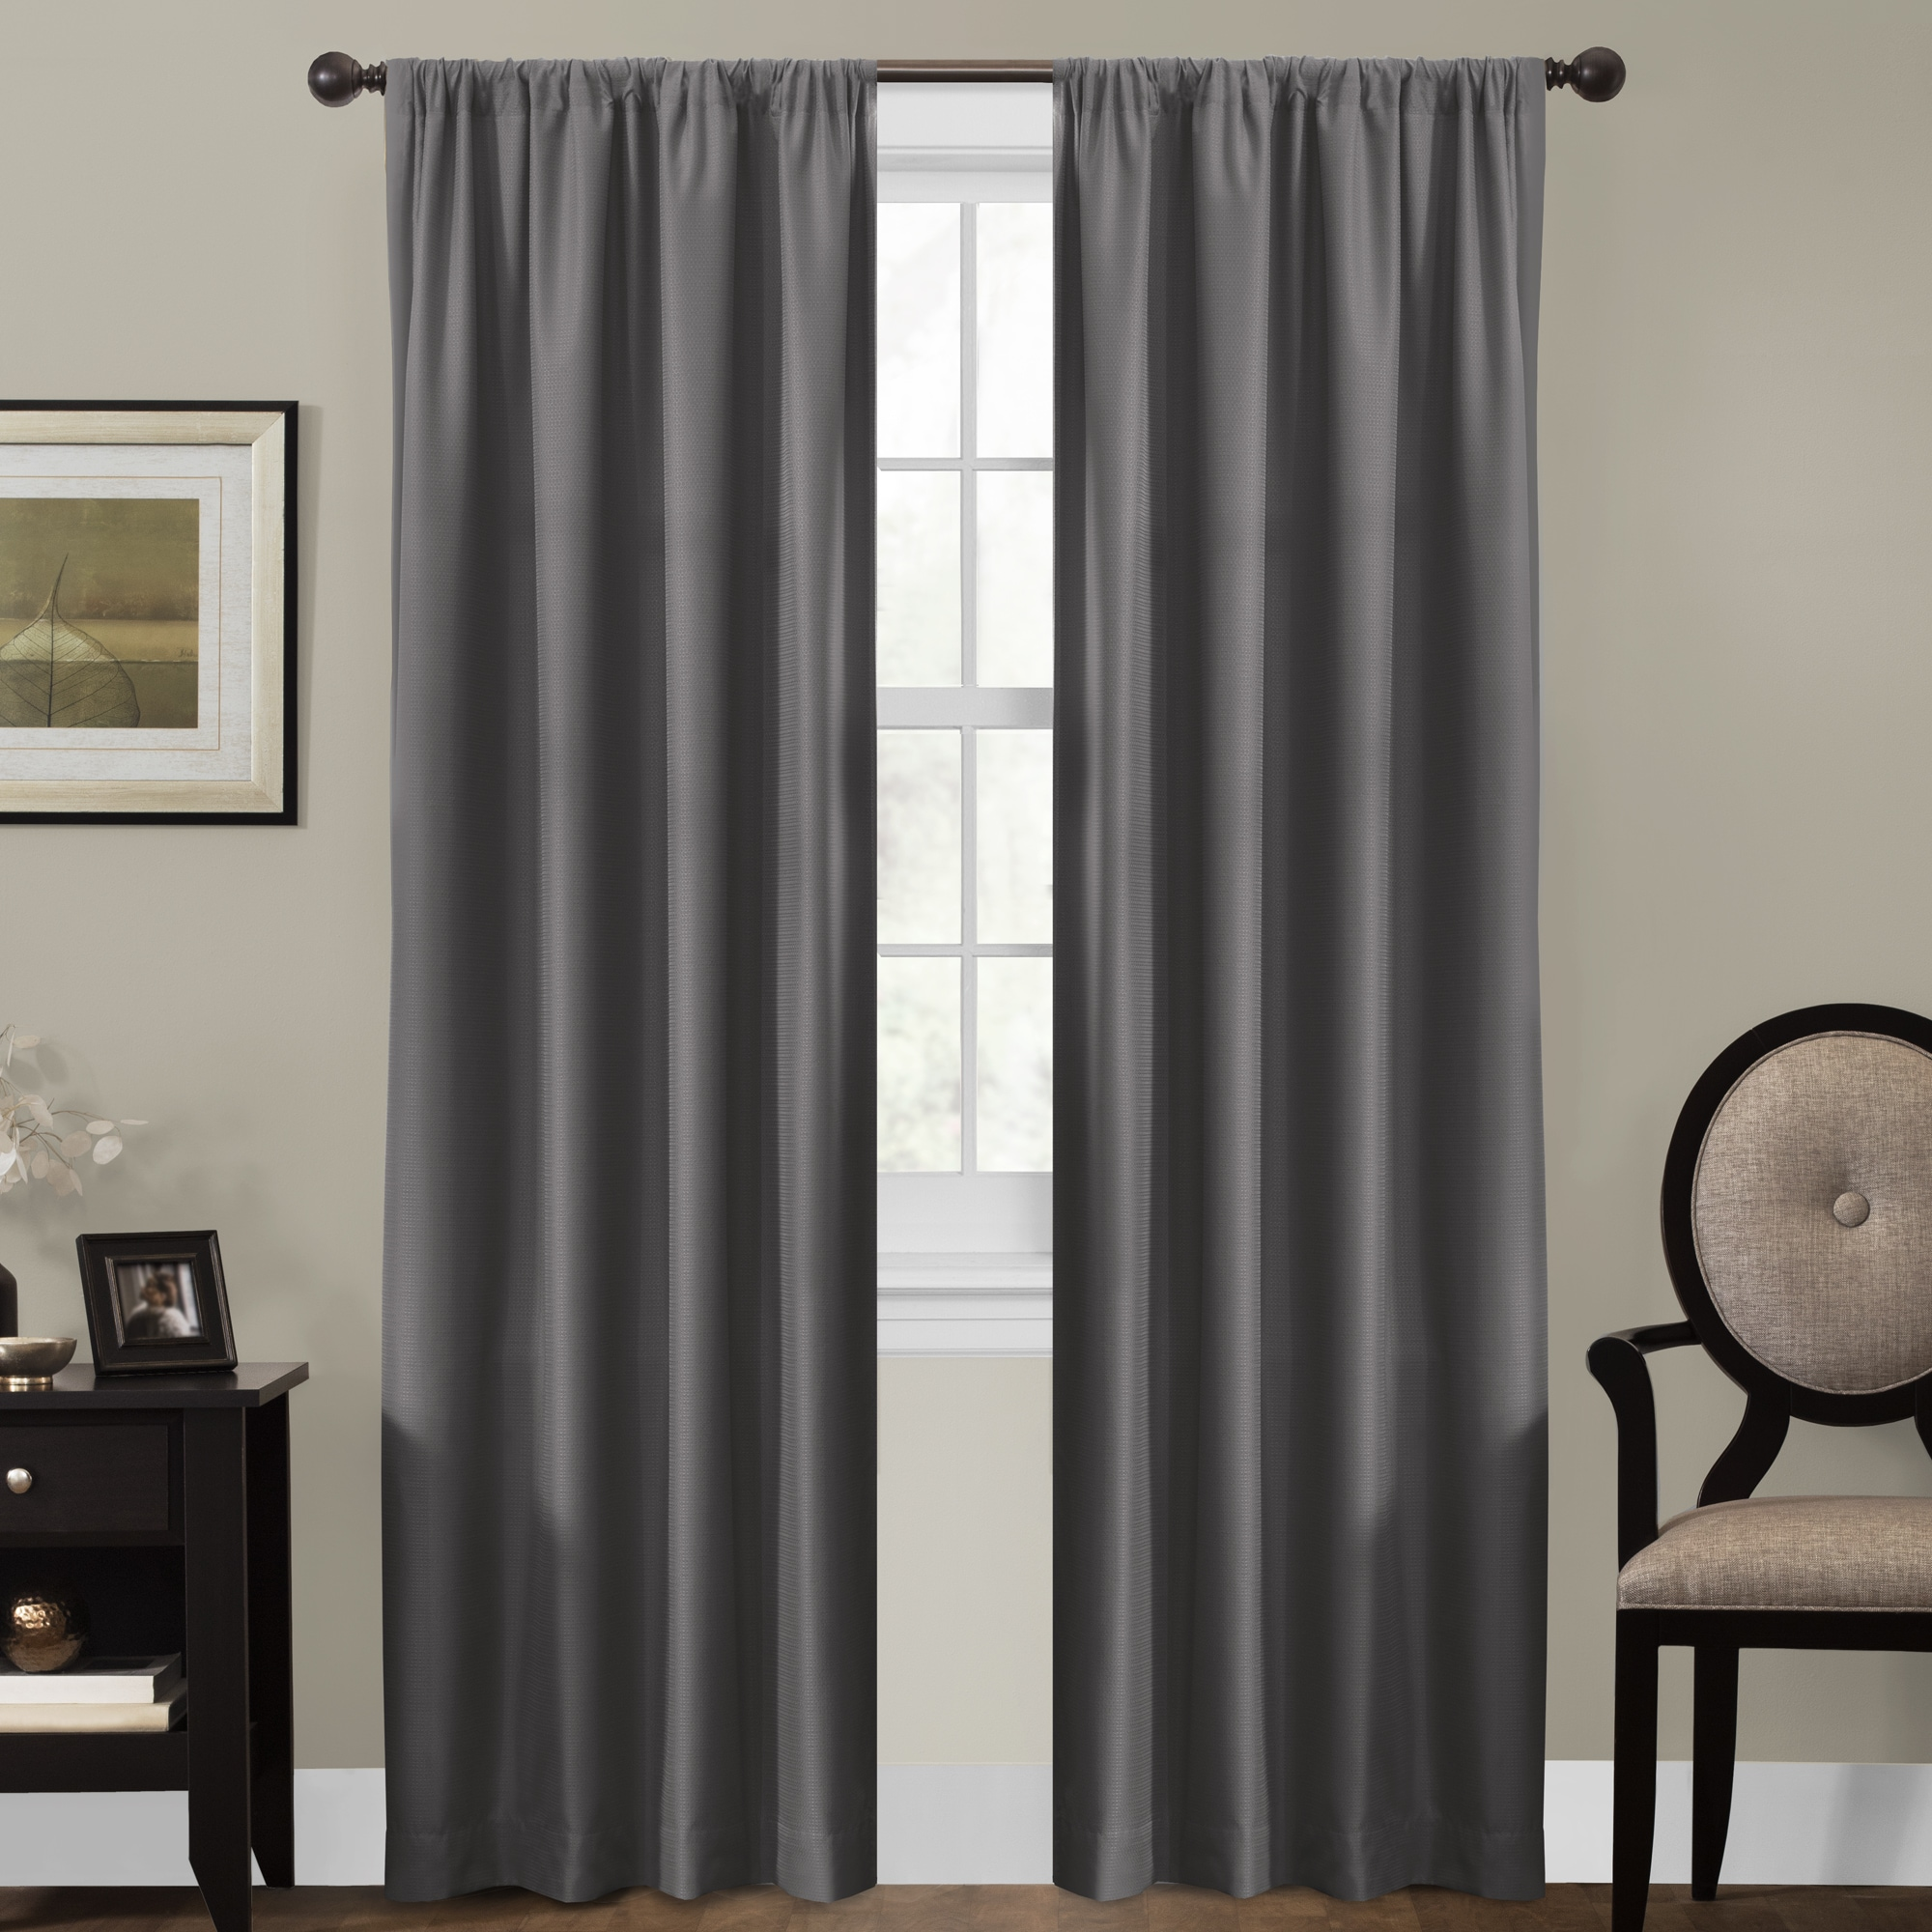 nicole grey curtains drapes x com by paisley ivory greenish amazon china colors gray medallion of superb marchesa in print inch miller photo pair